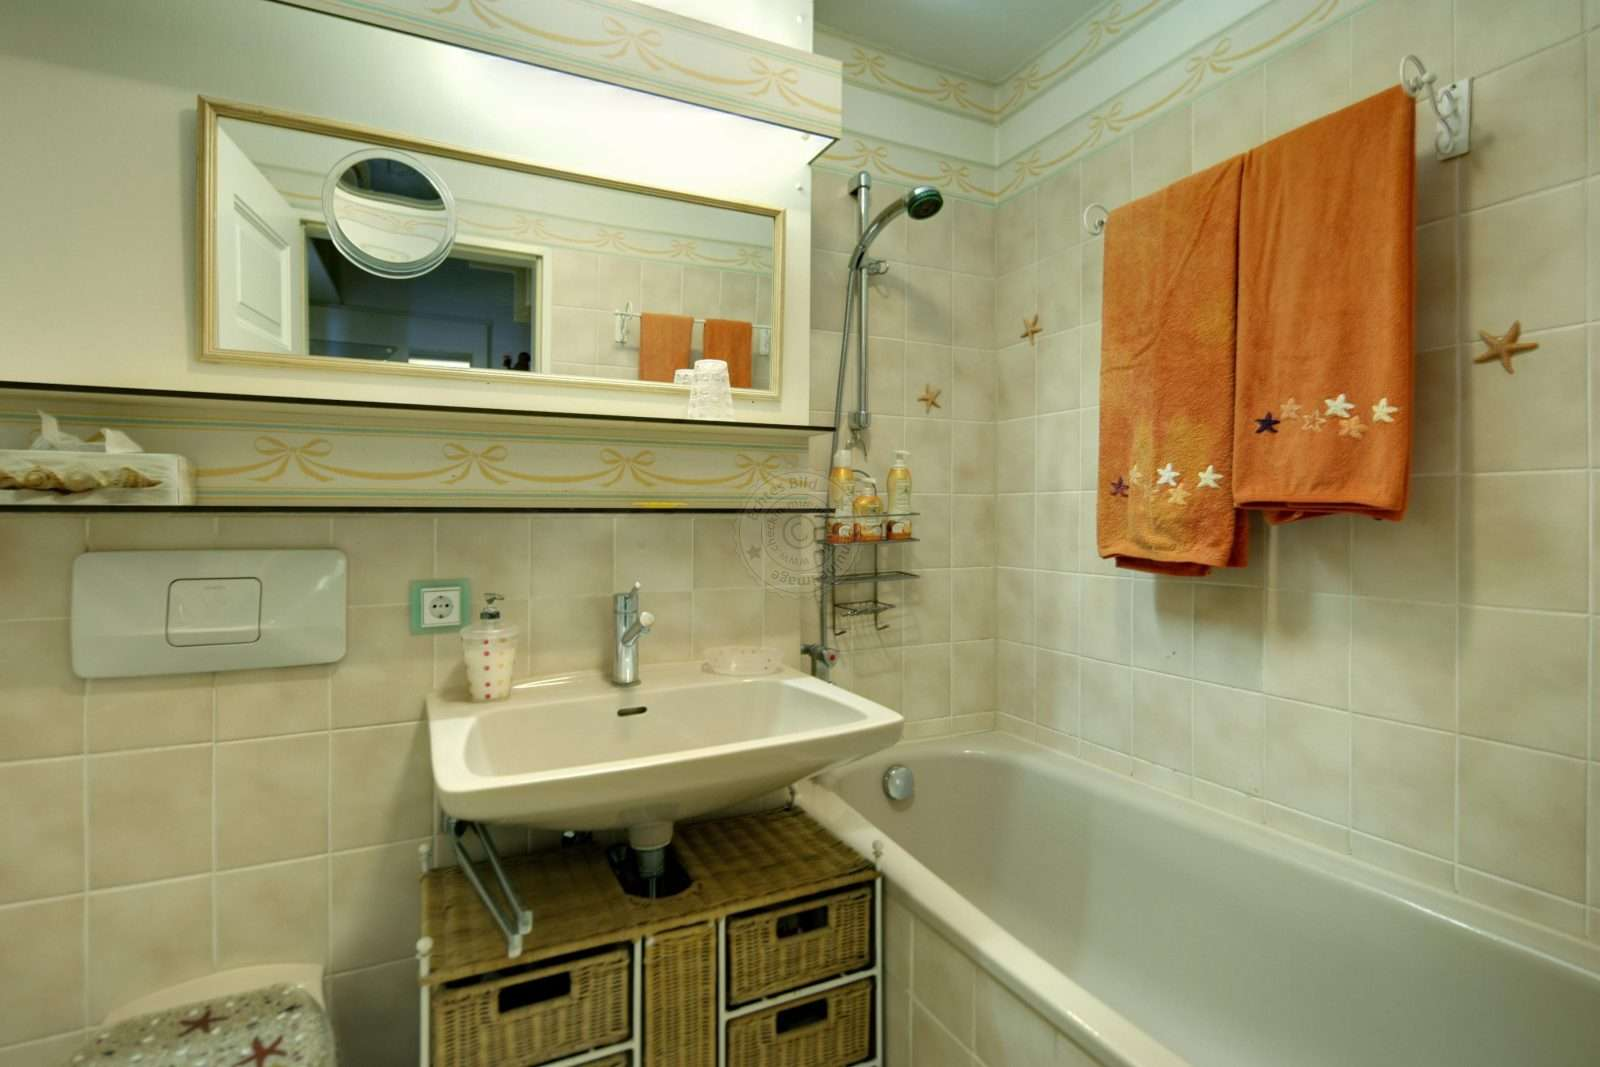 Ensuite bathroom with upscale amenities